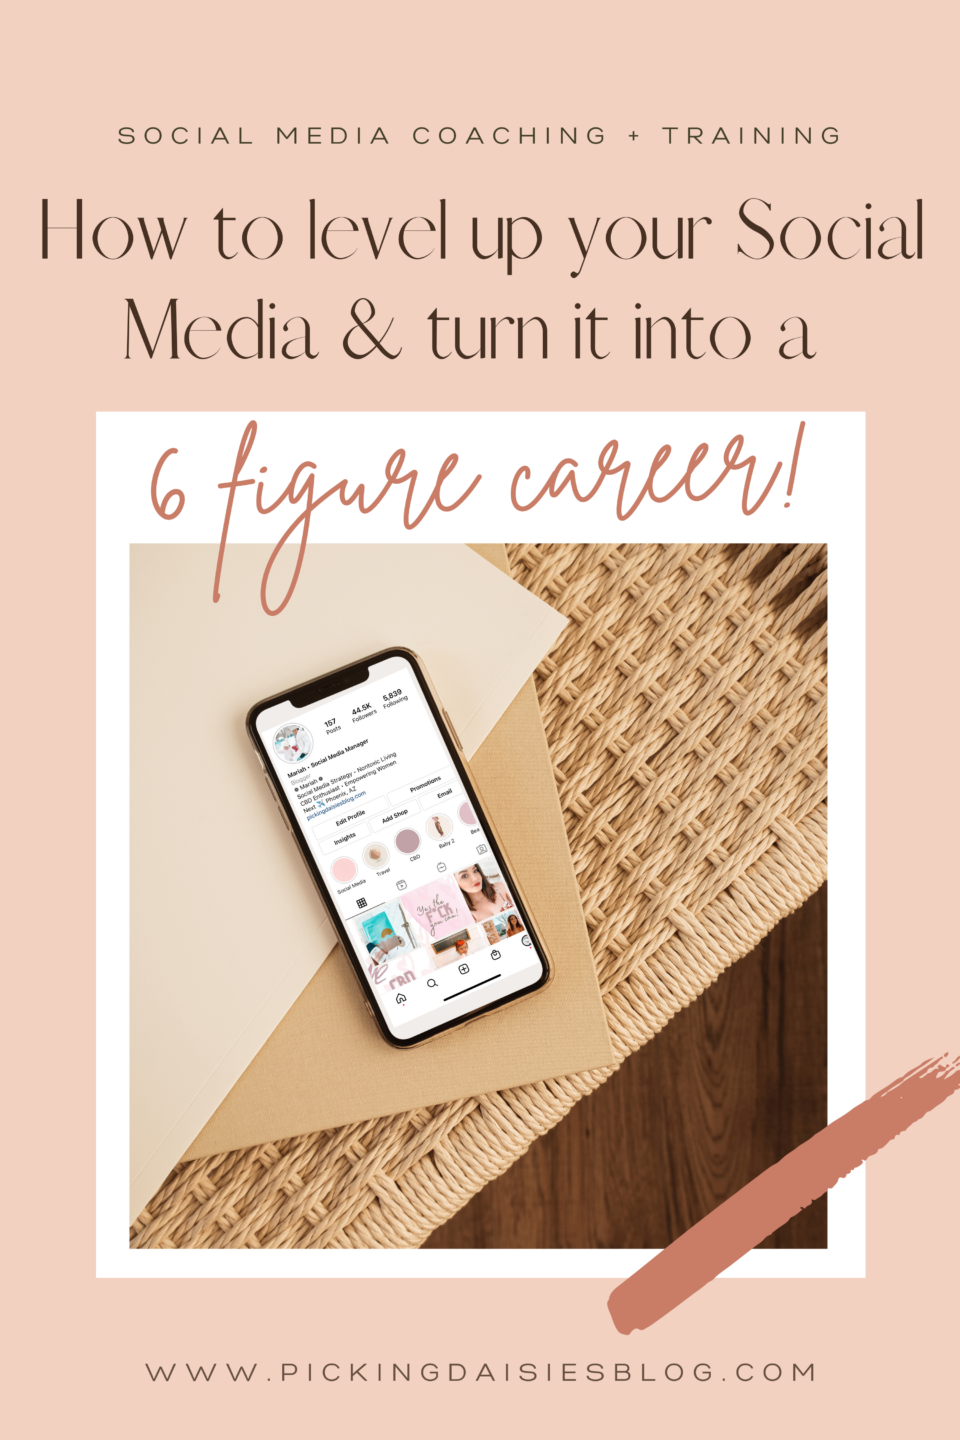 How to level up your Social Media & turn it into a 6-figure career Social Media Training Instagram Marketing Influencer Instagram Training